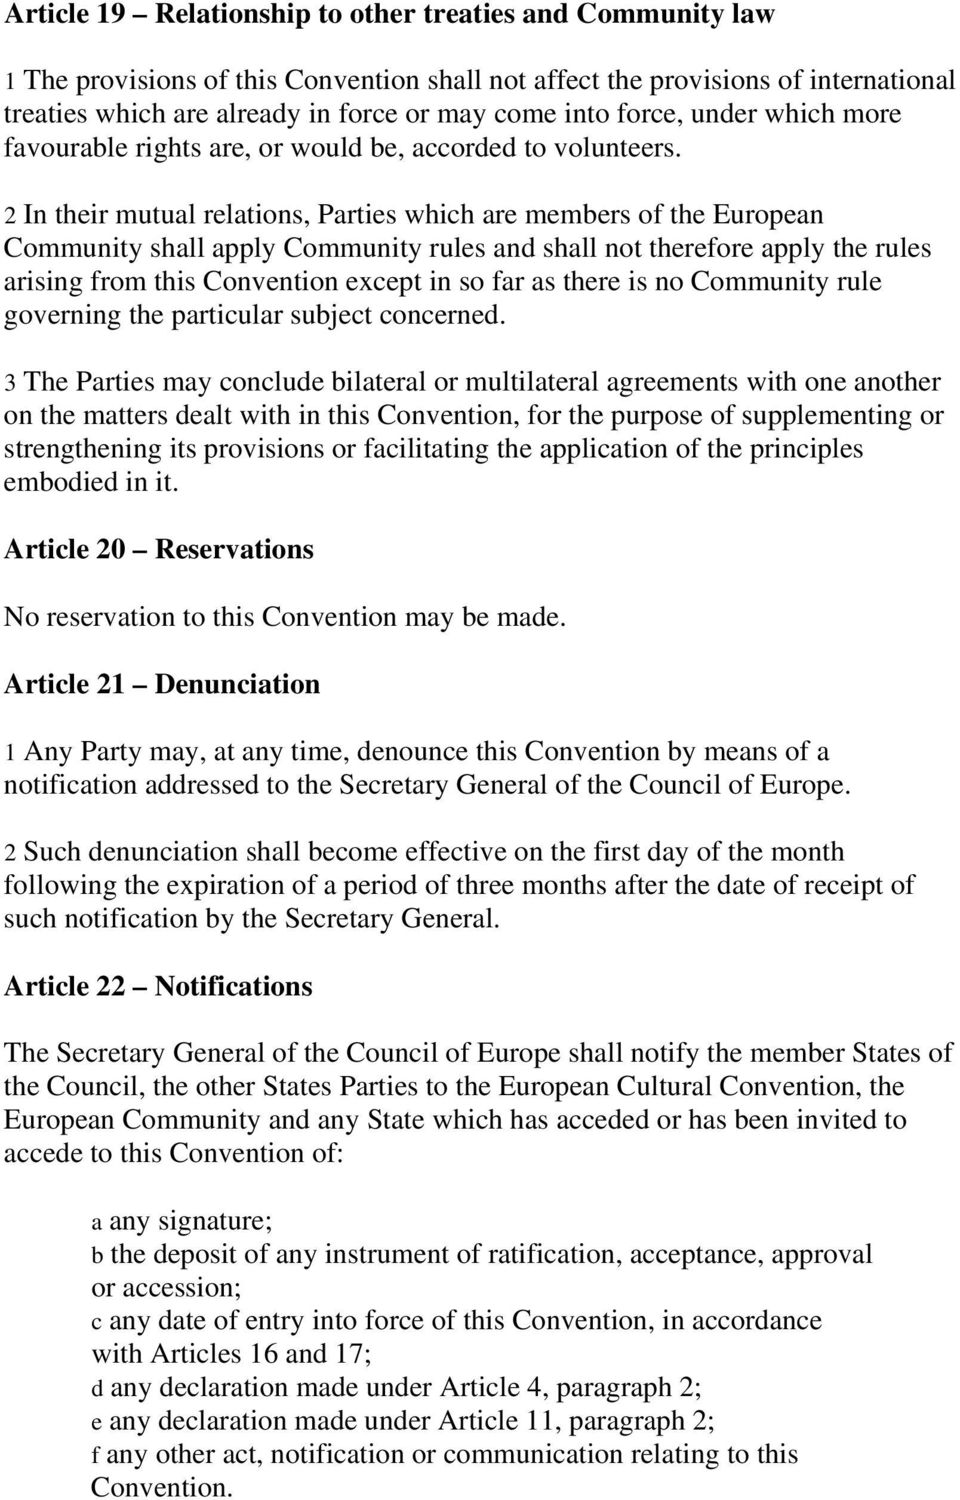 2 In their mutual relations, Parties which are members of the European Community shall apply Community rules and shall not therefore apply the rules arising from this Convention except in so far as